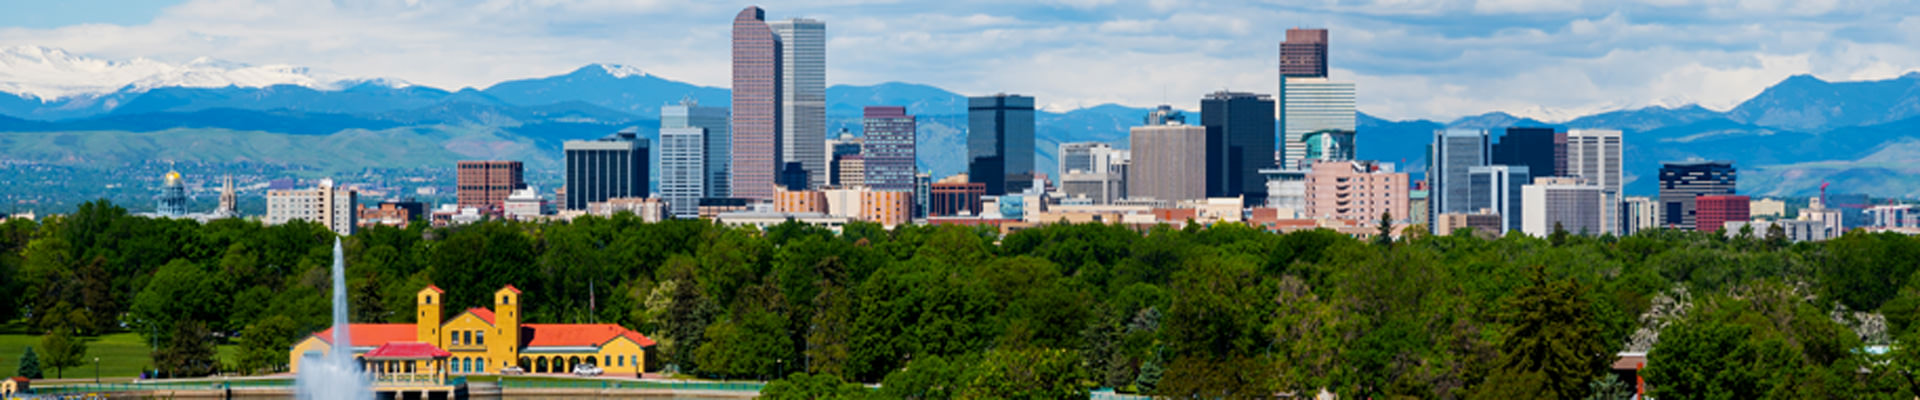 Goodman Commercial Real Estate Knows Denver